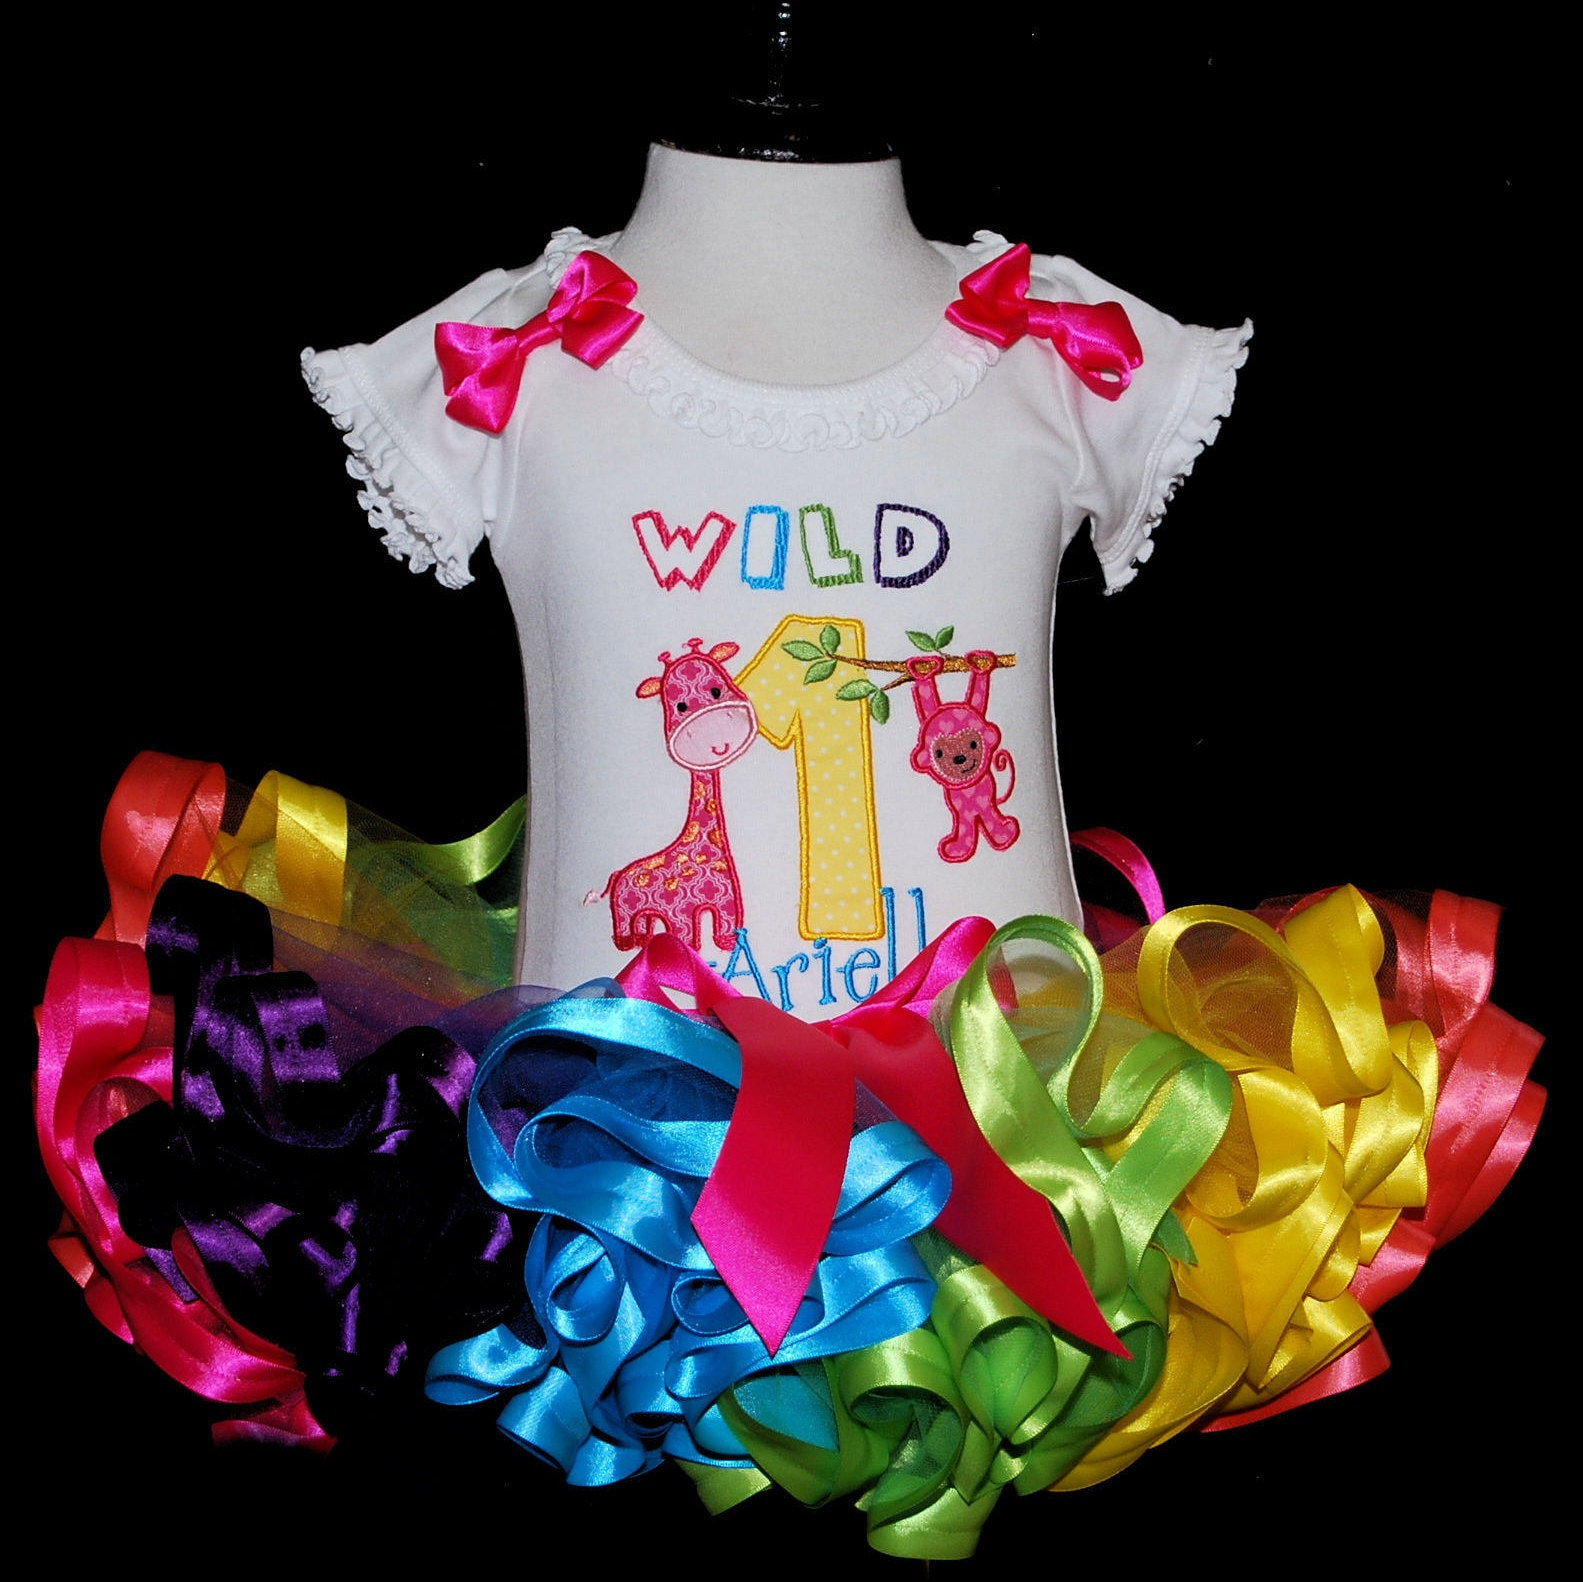 wild one birthday girl outfit jungle first birthday tutu 1st birthday girl outfit first birthday outfit 1st birthday tutu dress animal tutu